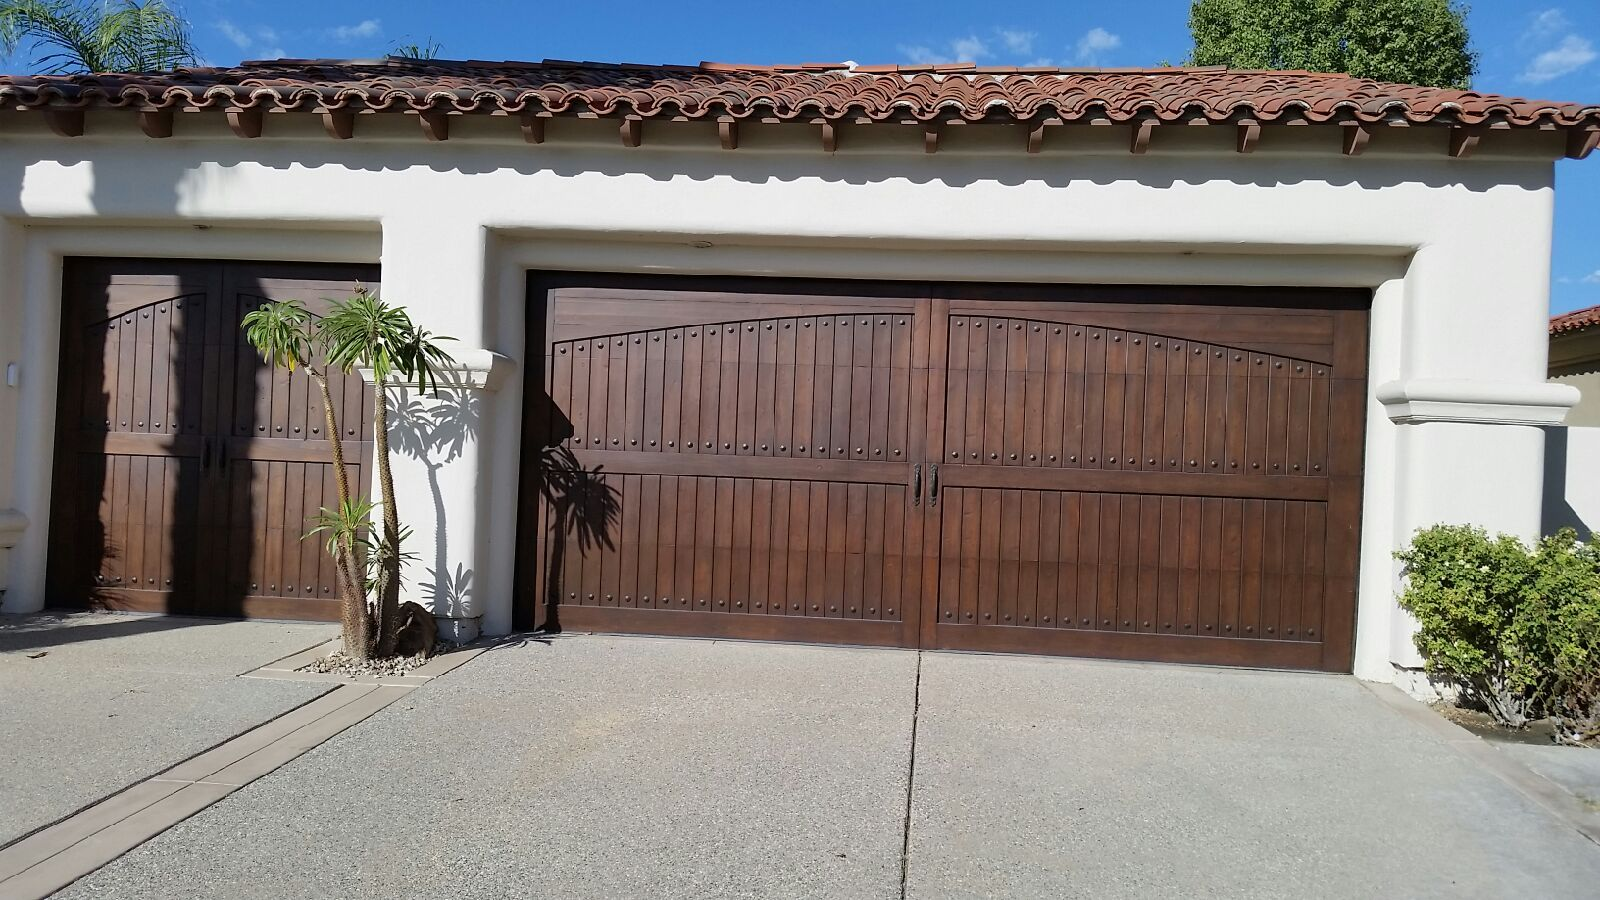 Eligant Dark Stain On Single Arch Vertical Cedar Garage Door Garage Door Styles Garage Door Types Garage Doors